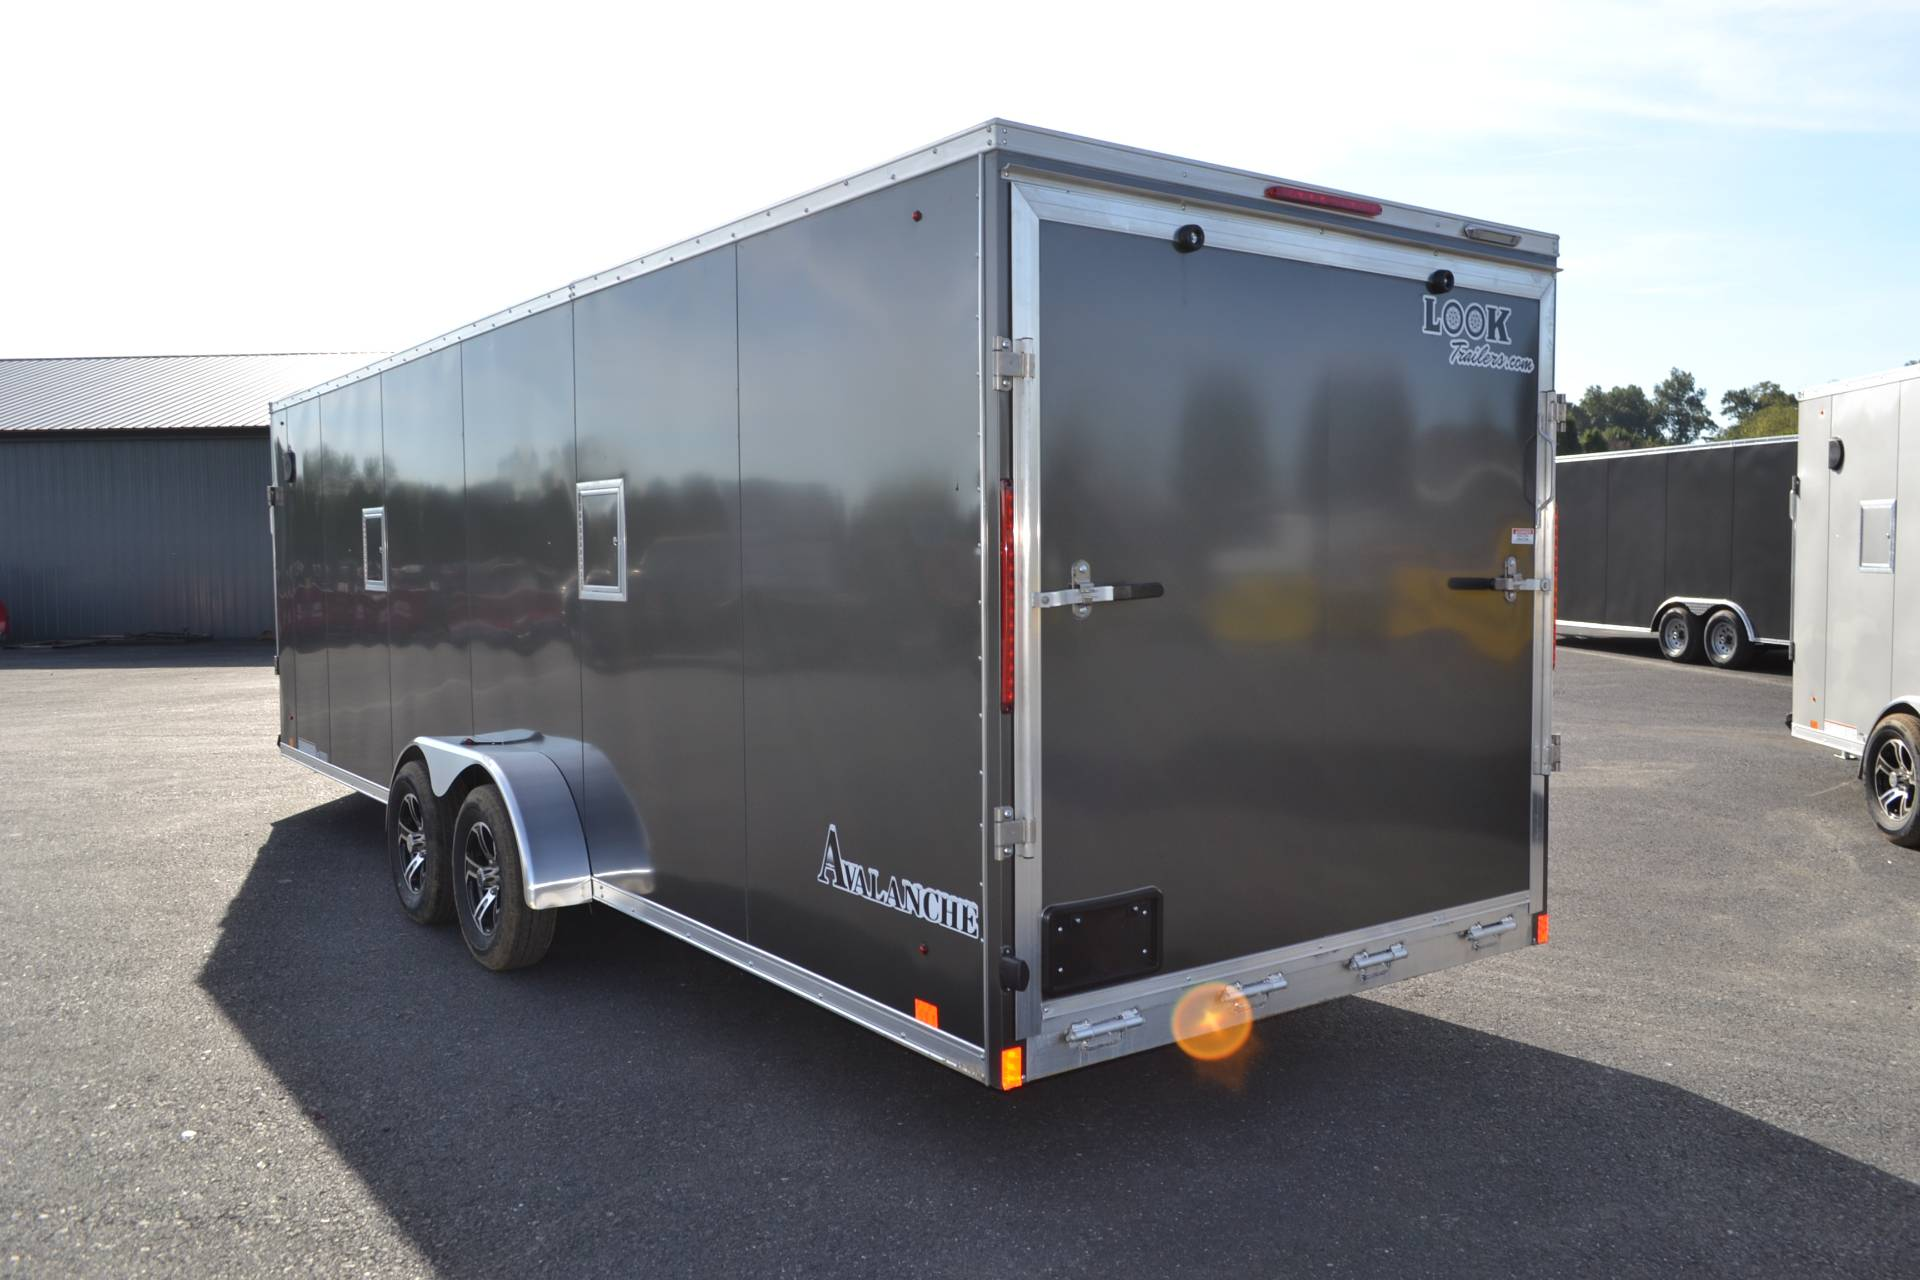 2020 Look Trailers 7x29 Avalanche Aluminum Enclosed Snowmobile Trailer 7K +6 in Harrisburg, Pennsylvania - Photo 7